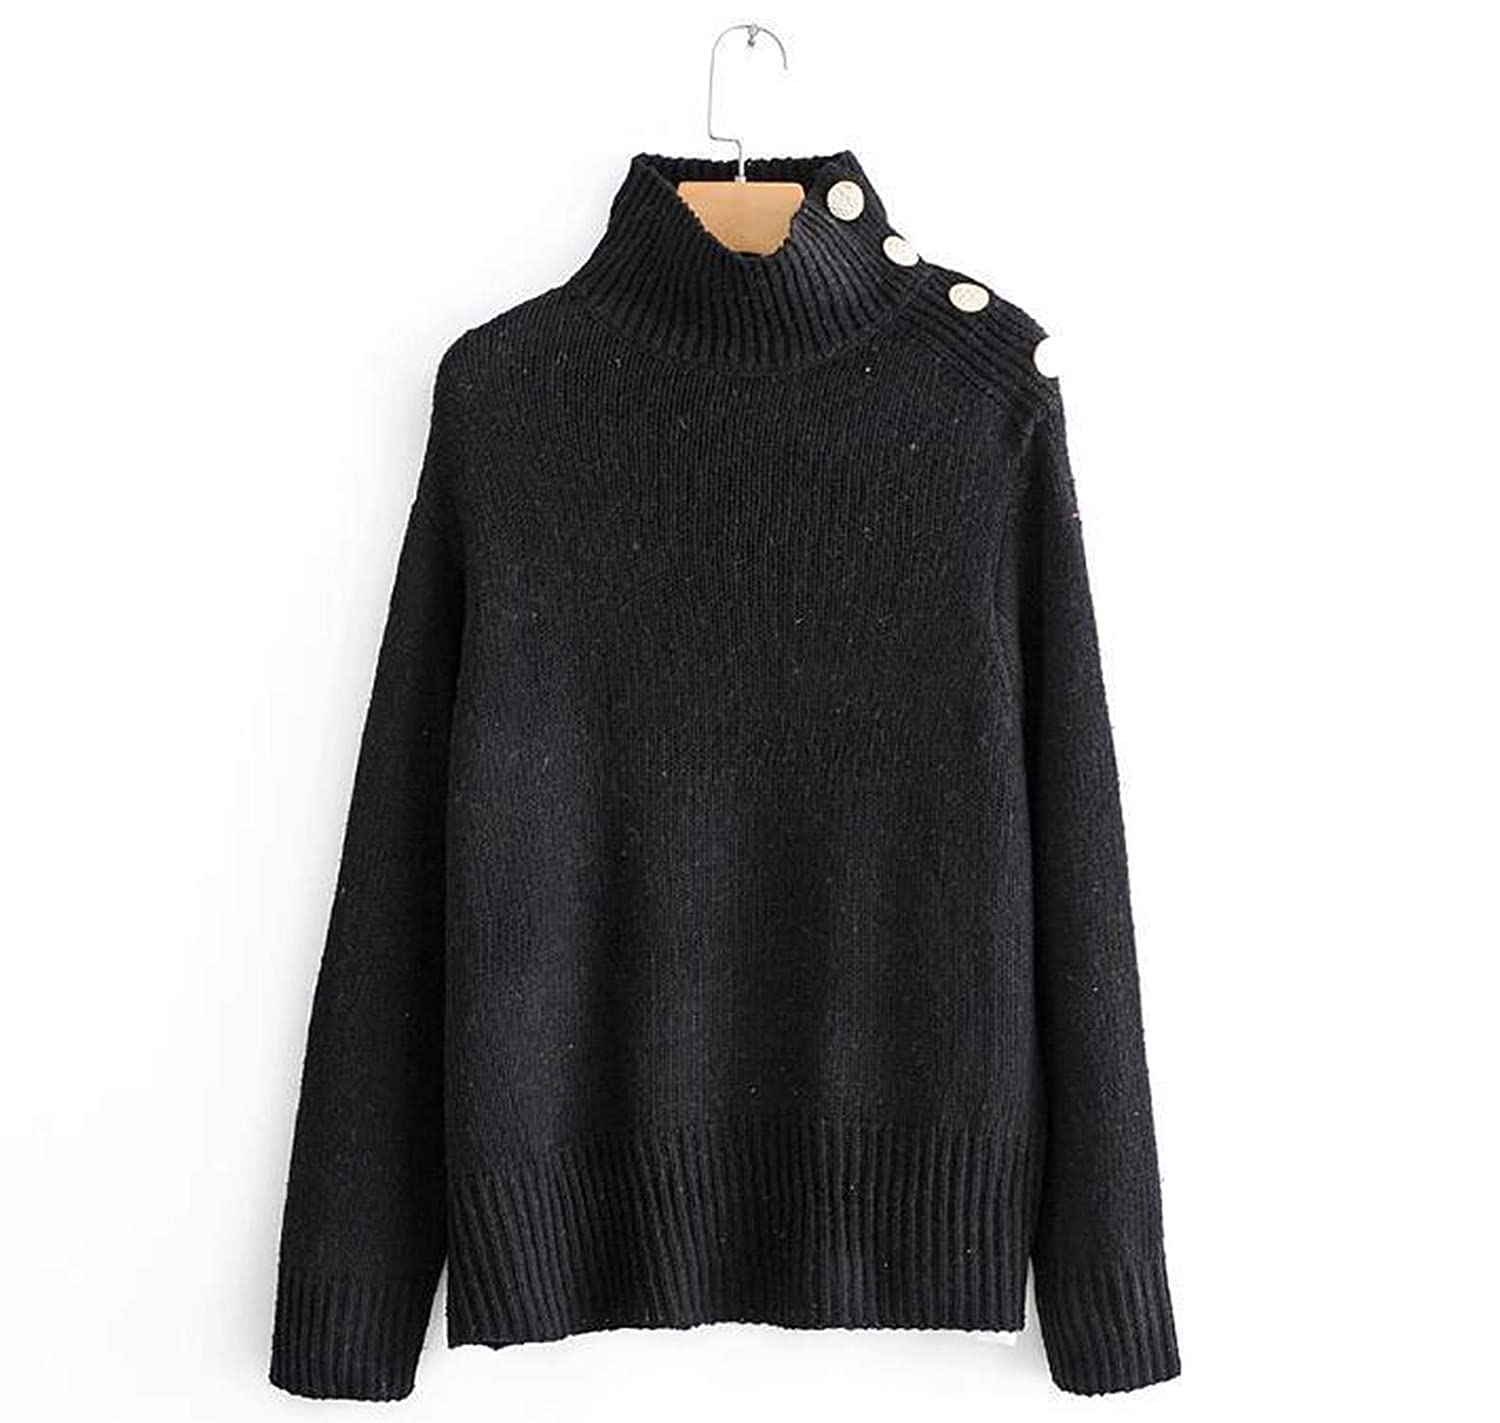 The small cat Winter Women Turtleneck Knit Sweater Buttons Decor Loose Knit Pullovers Pull Femme Casaco Feminino